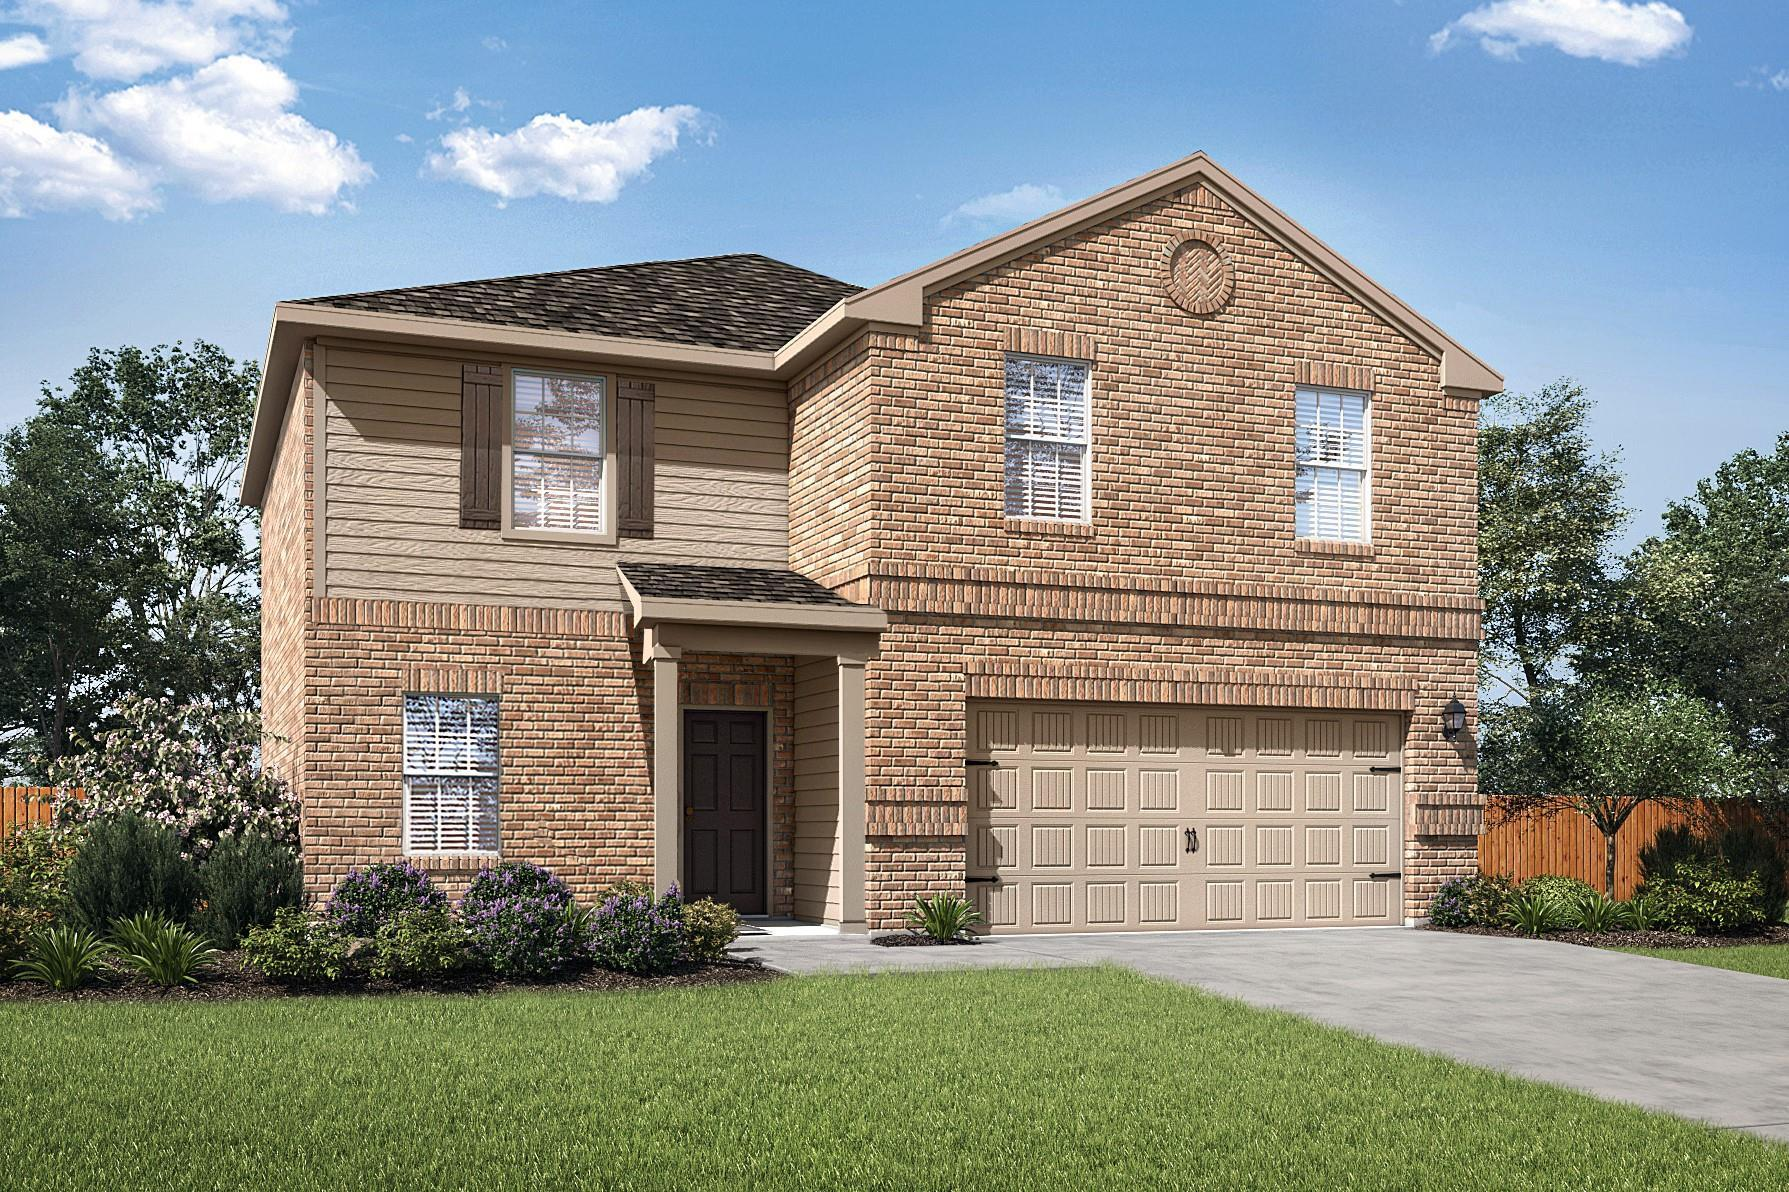 The Rio by LGI Homes:The Rio is a new four-bedroom home by LGI Homes.